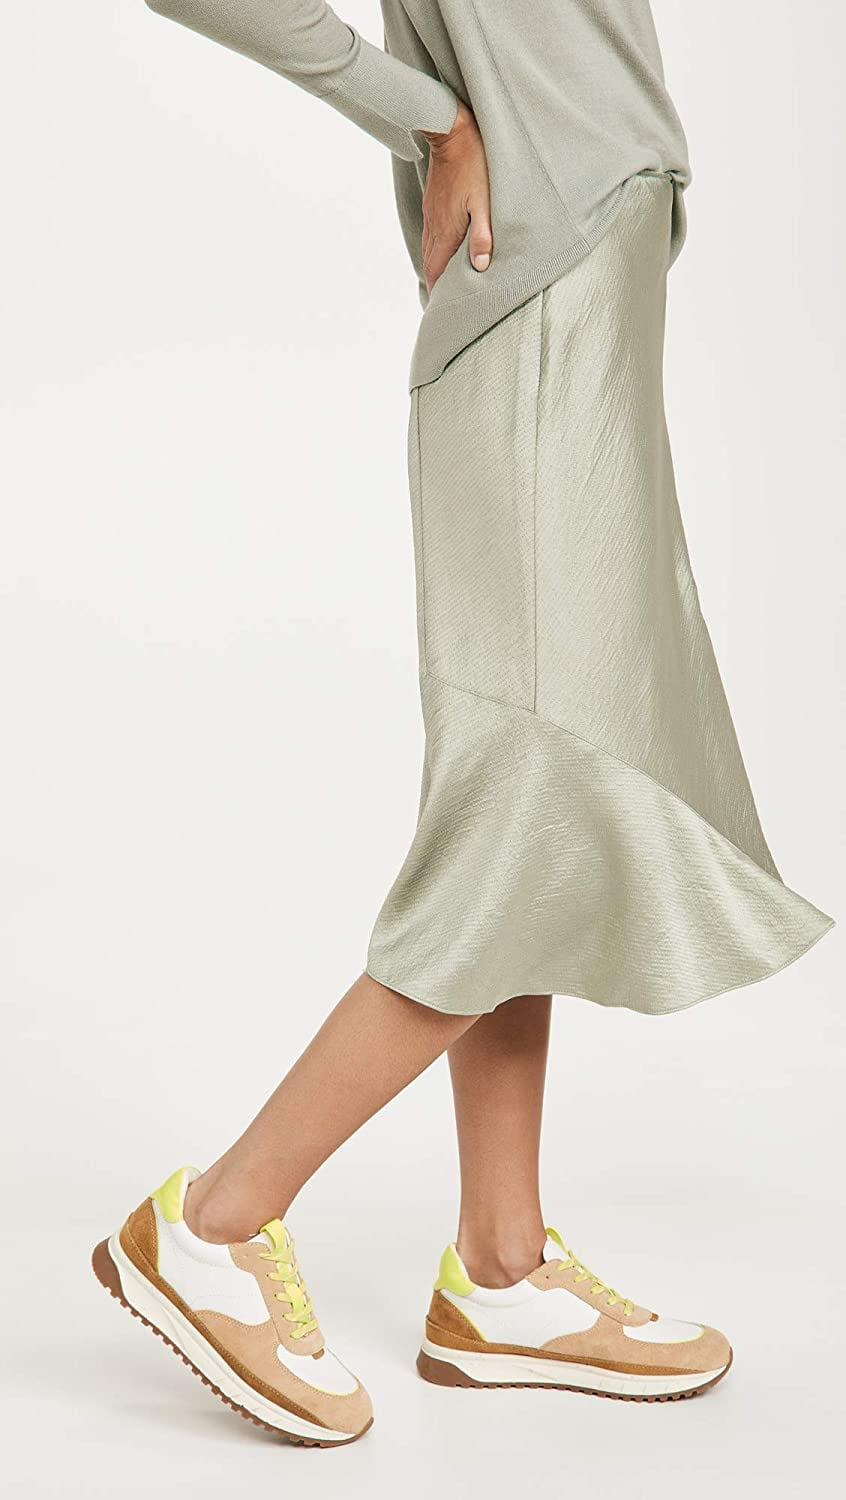 <p>Rock this <span>Club Monaco Seamed Slip Skirt</span> ($75) with sneakers or sandals.</p>